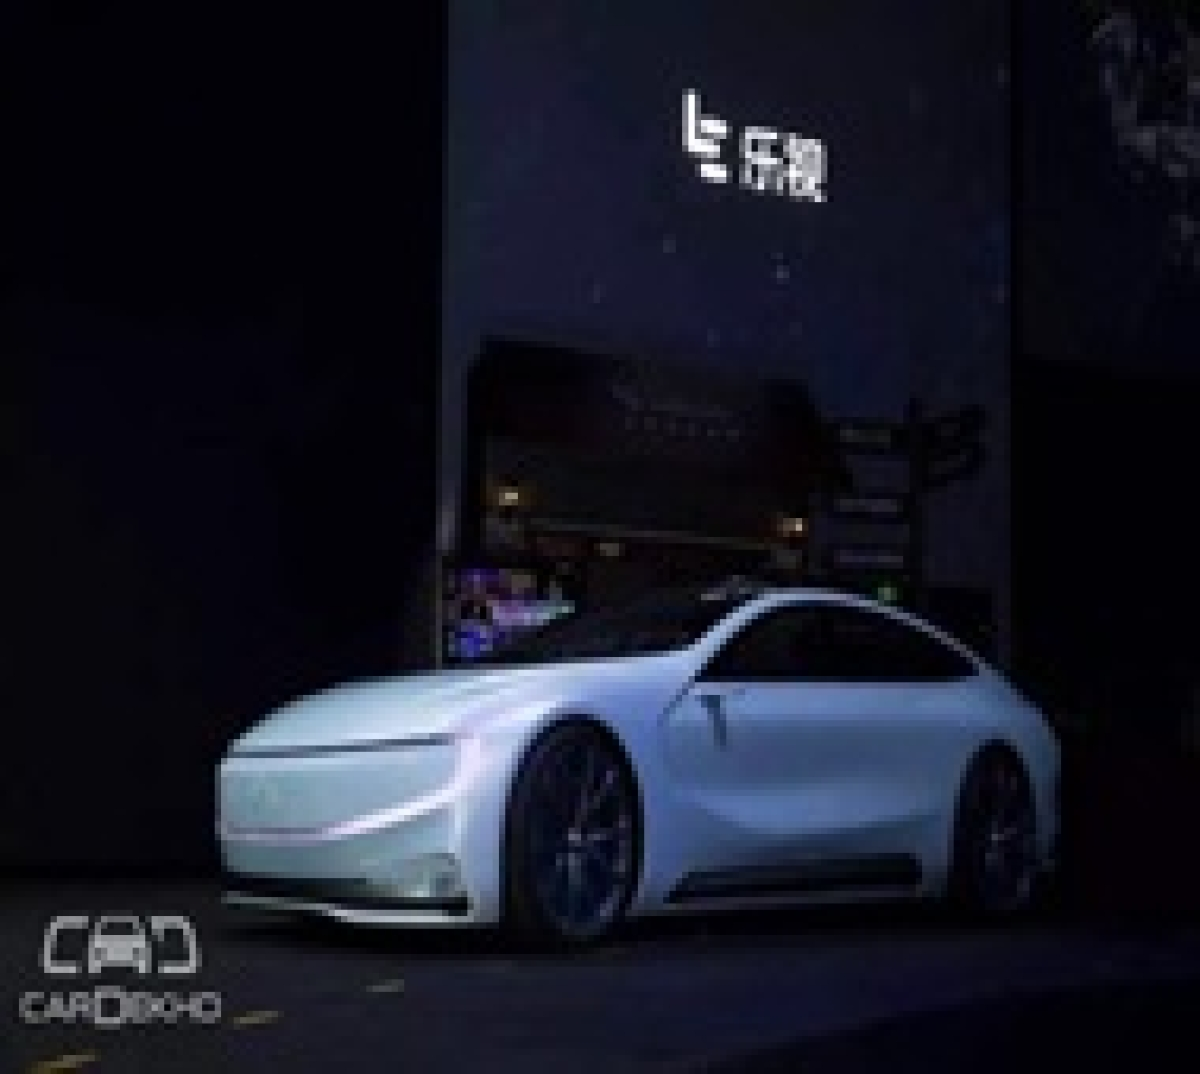 Chinese tech giant LeEco unveils the LeSEE electric car